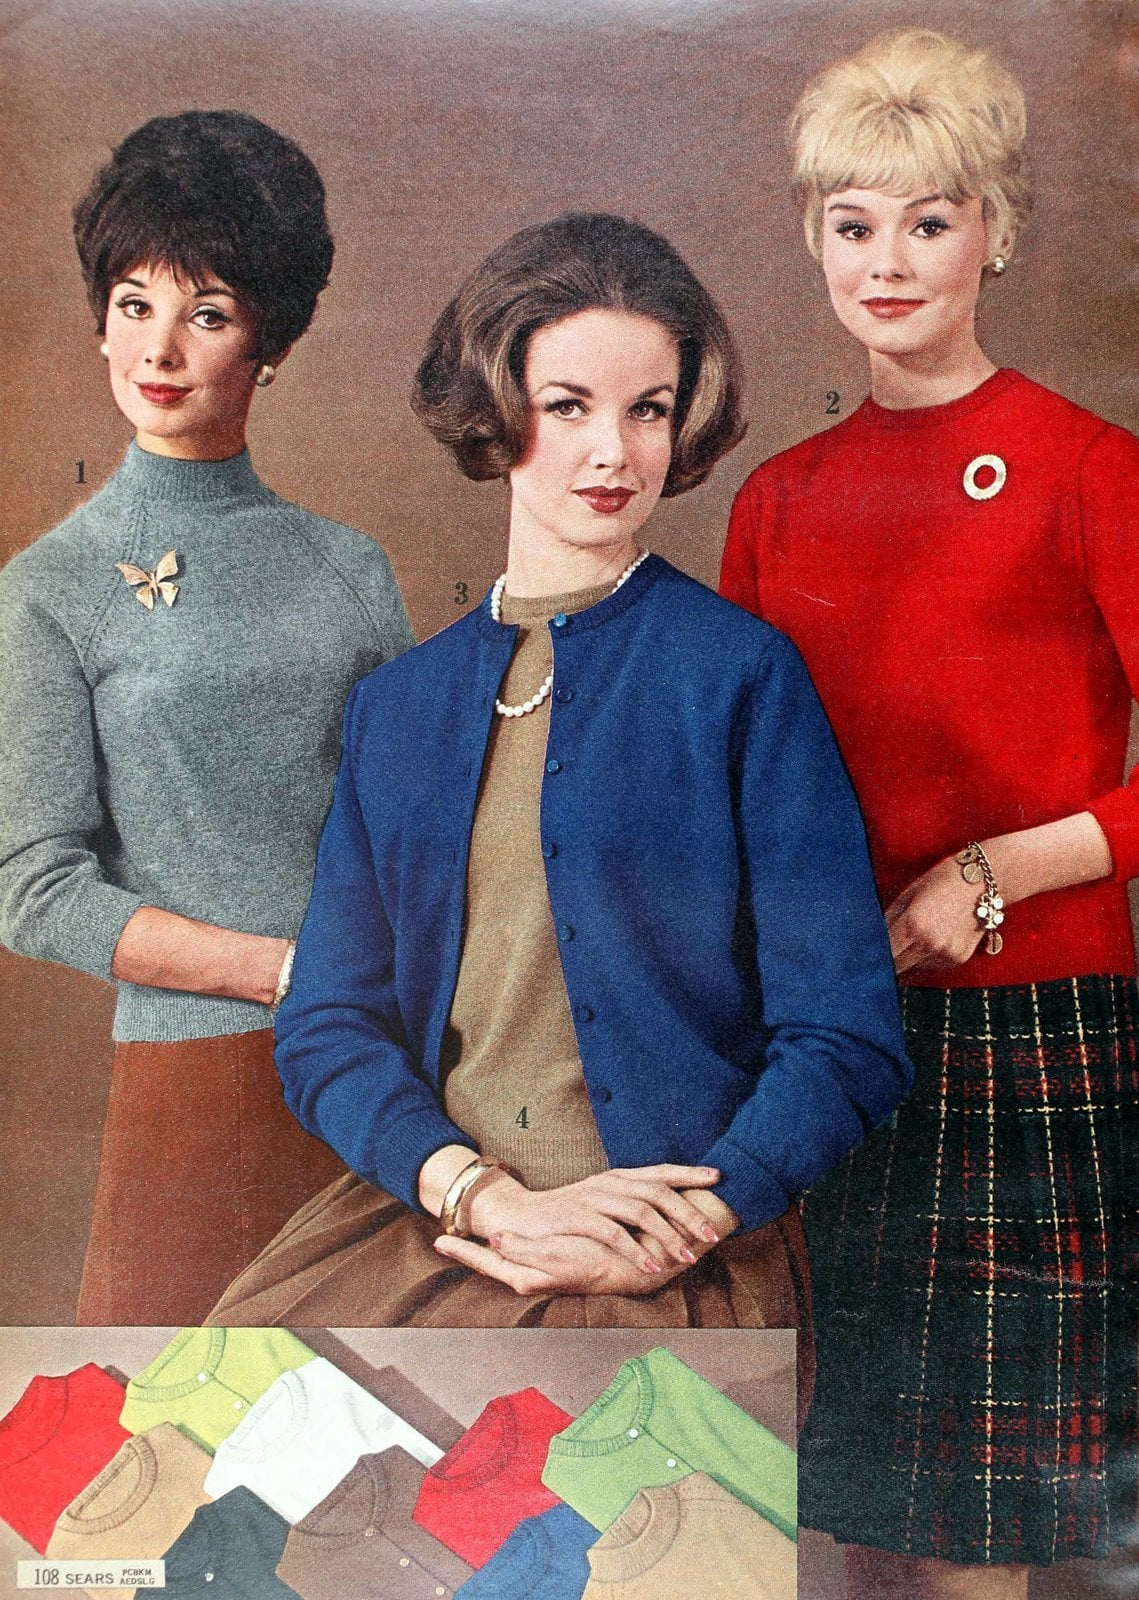 Sixties sweater styles from 1962 (6)